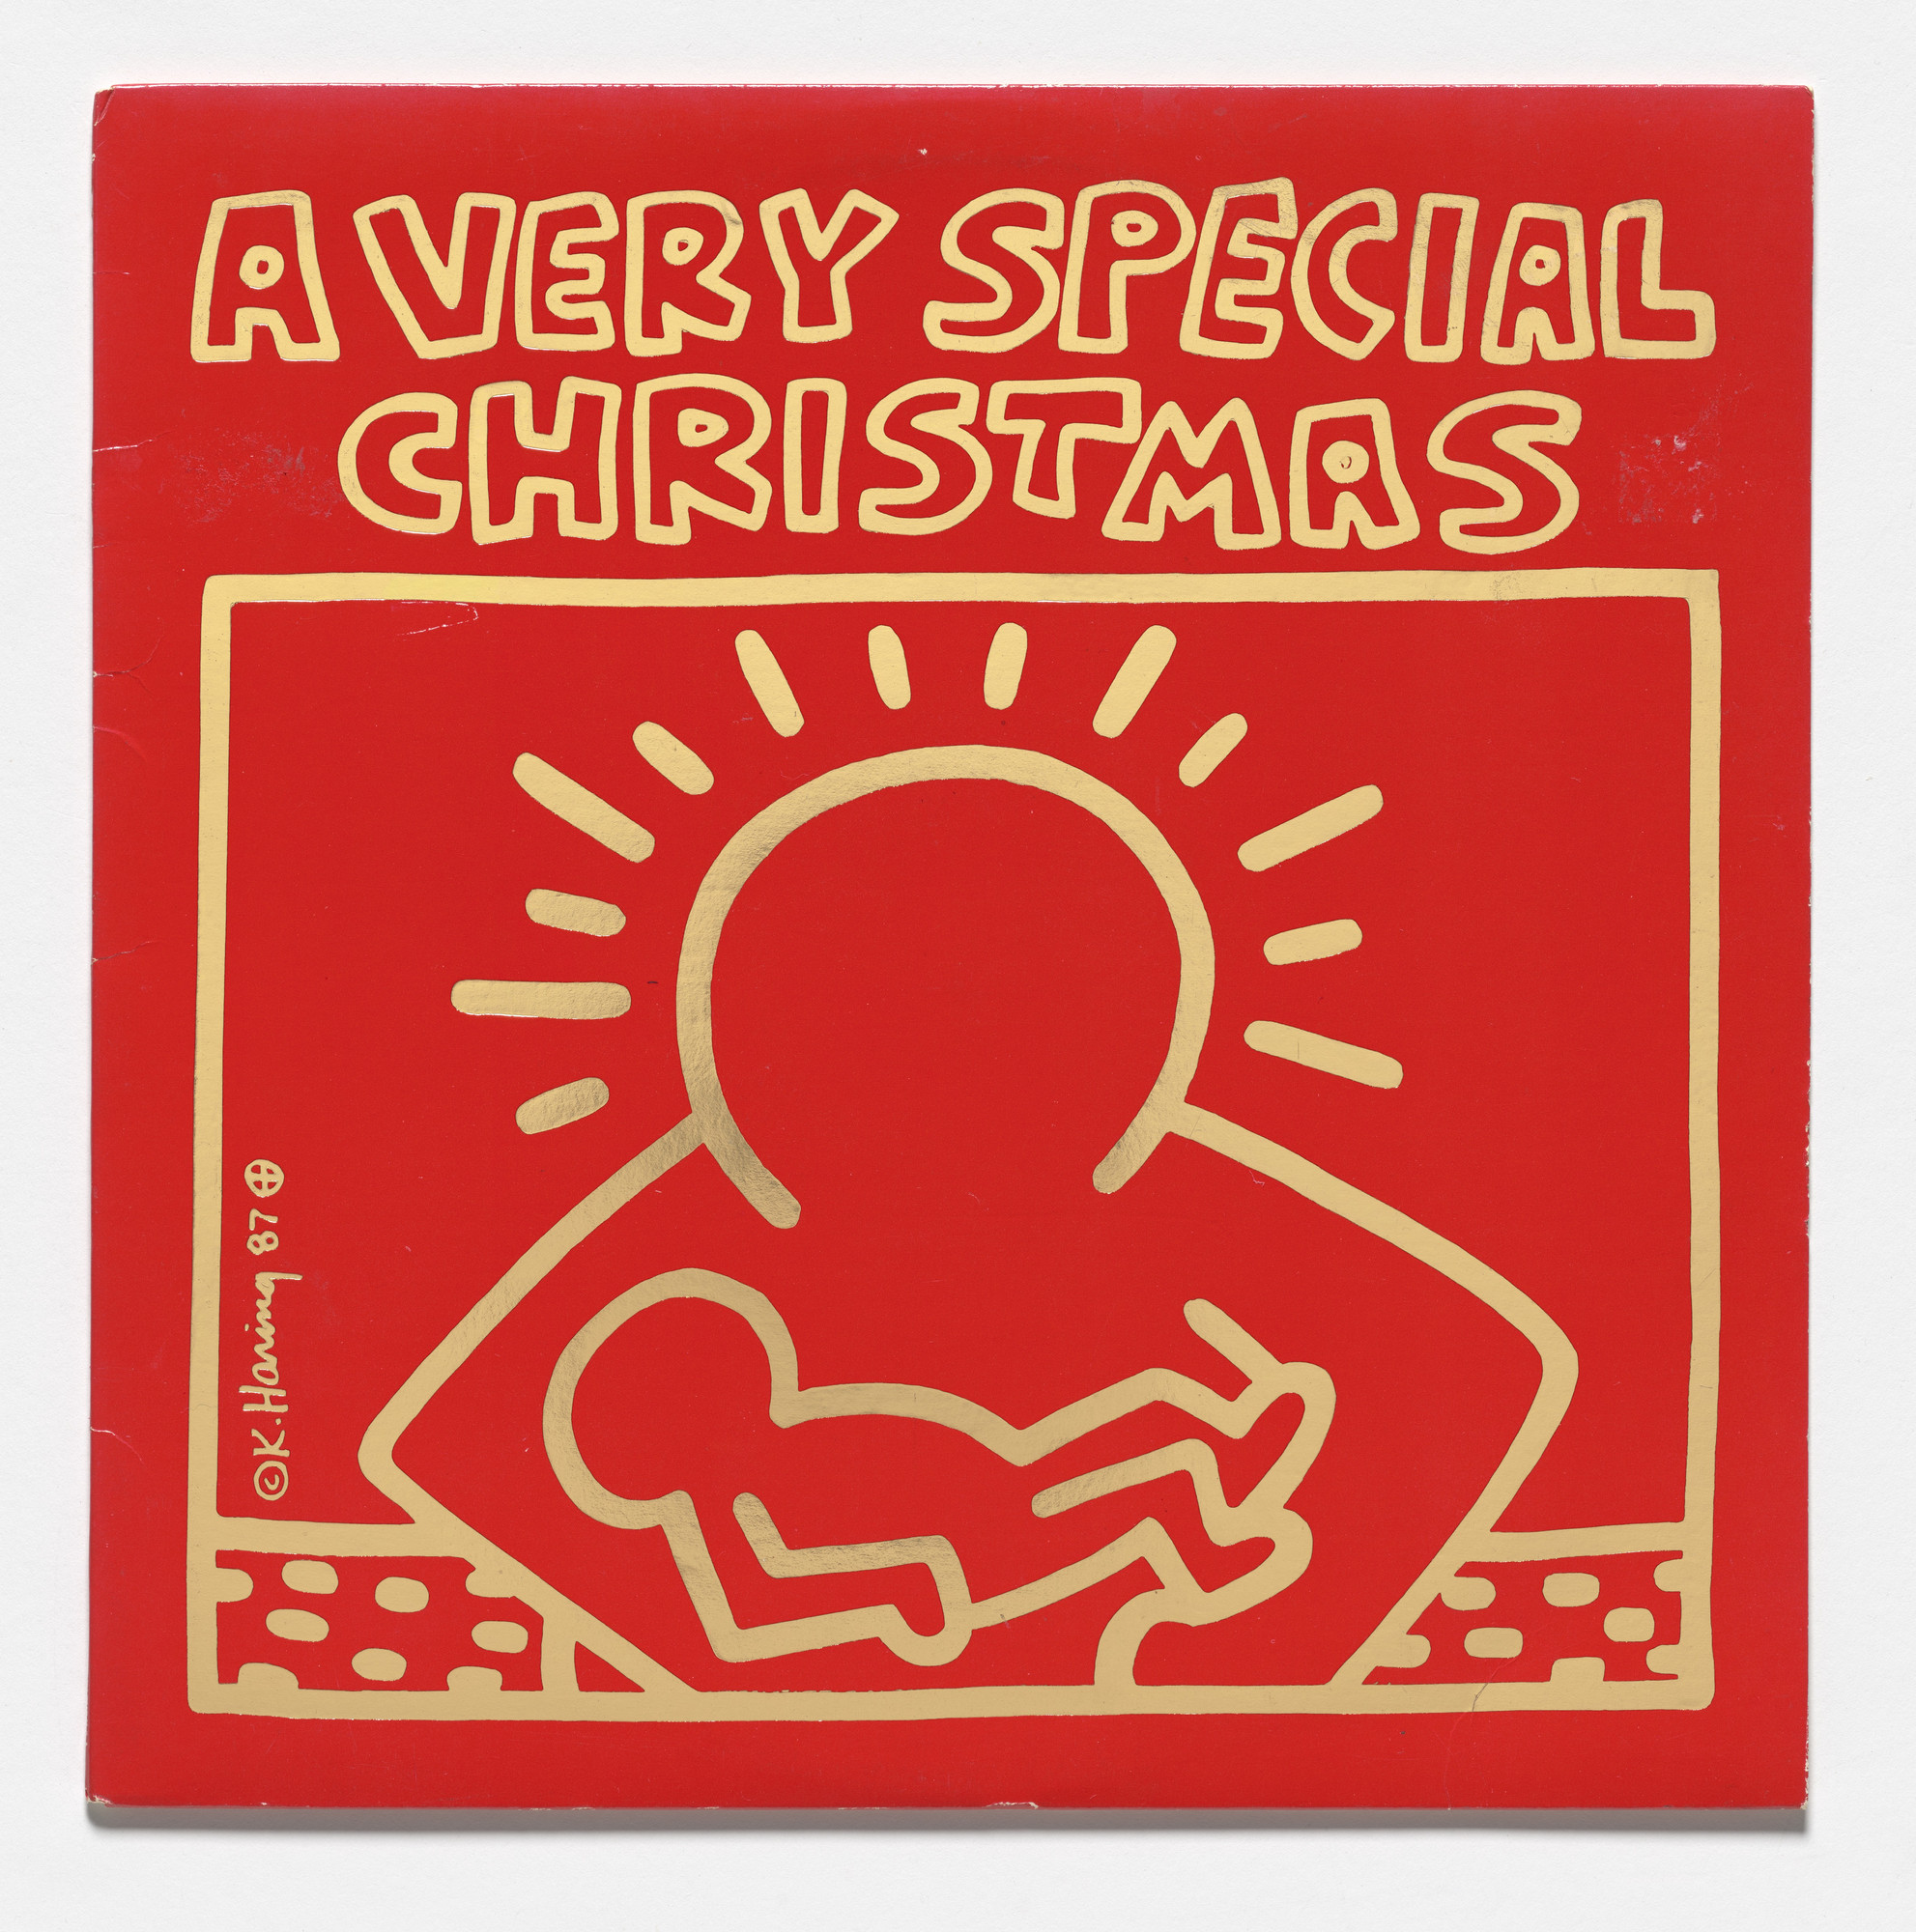 Various Artists, Keith Haring. A Very Special Christmas. 1987